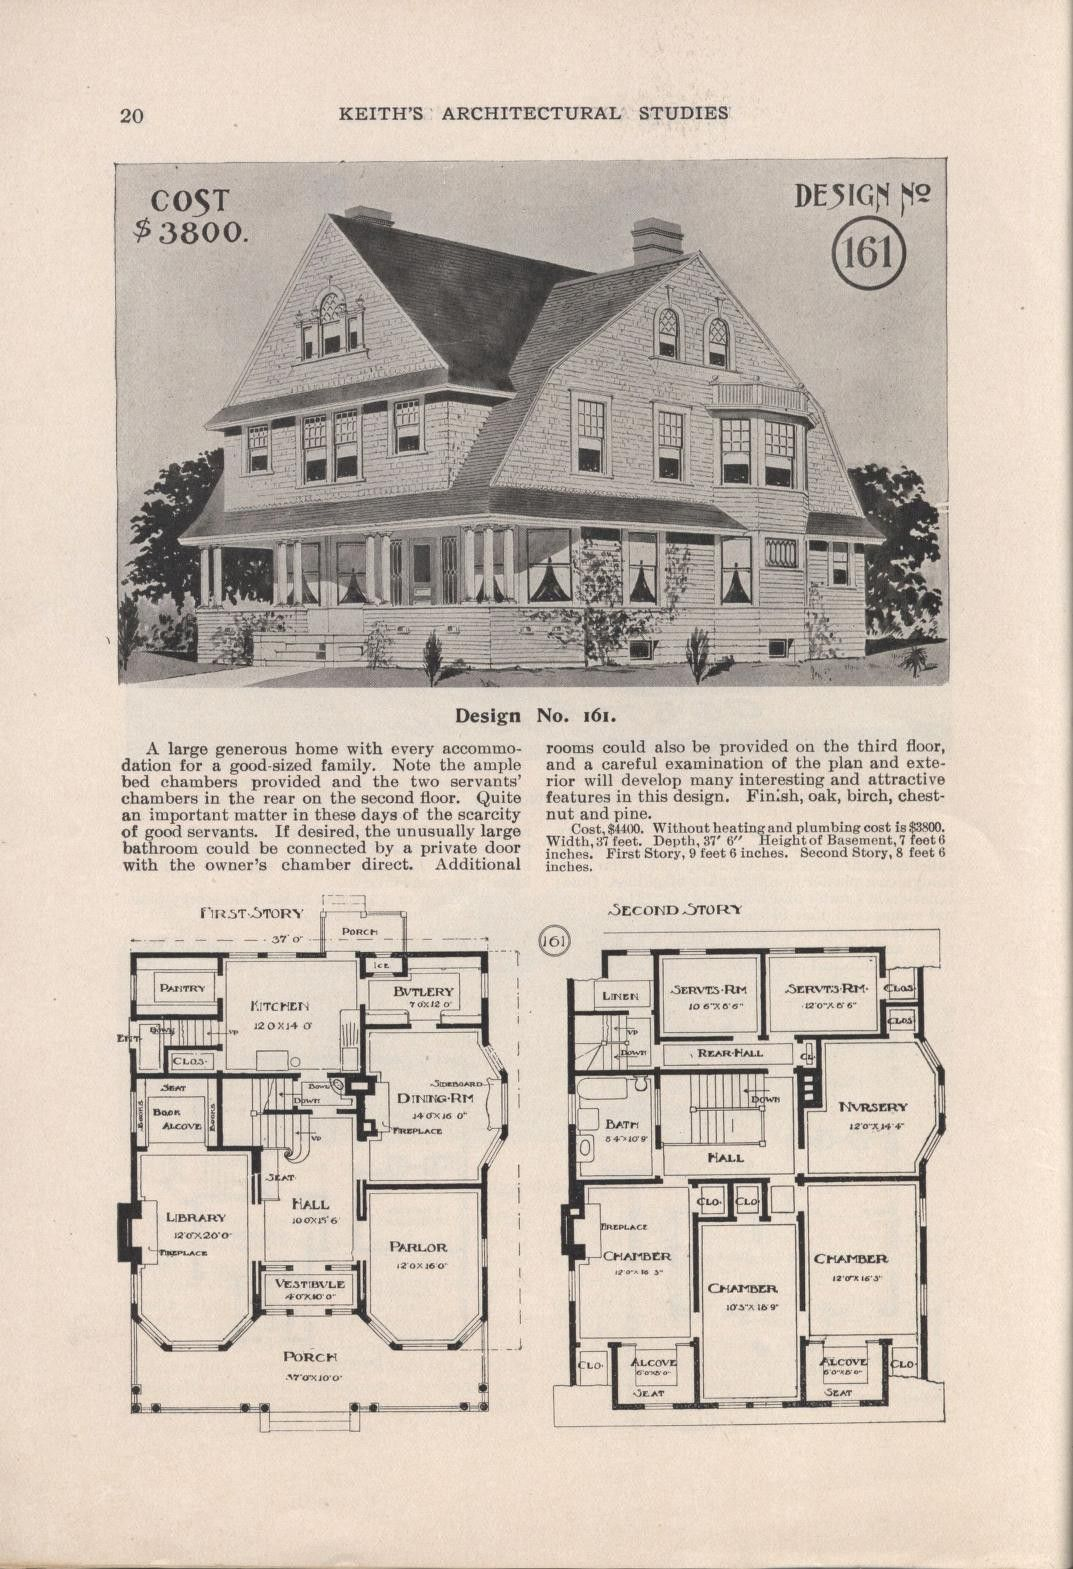 Pin By Janet Vermilyea On Homes Vintage House Plans House Plans   House Plans With Servant Stairs   Classic American House   1890'S Victorian Home   Prairie Box House   Farmer House   Downton Abbey